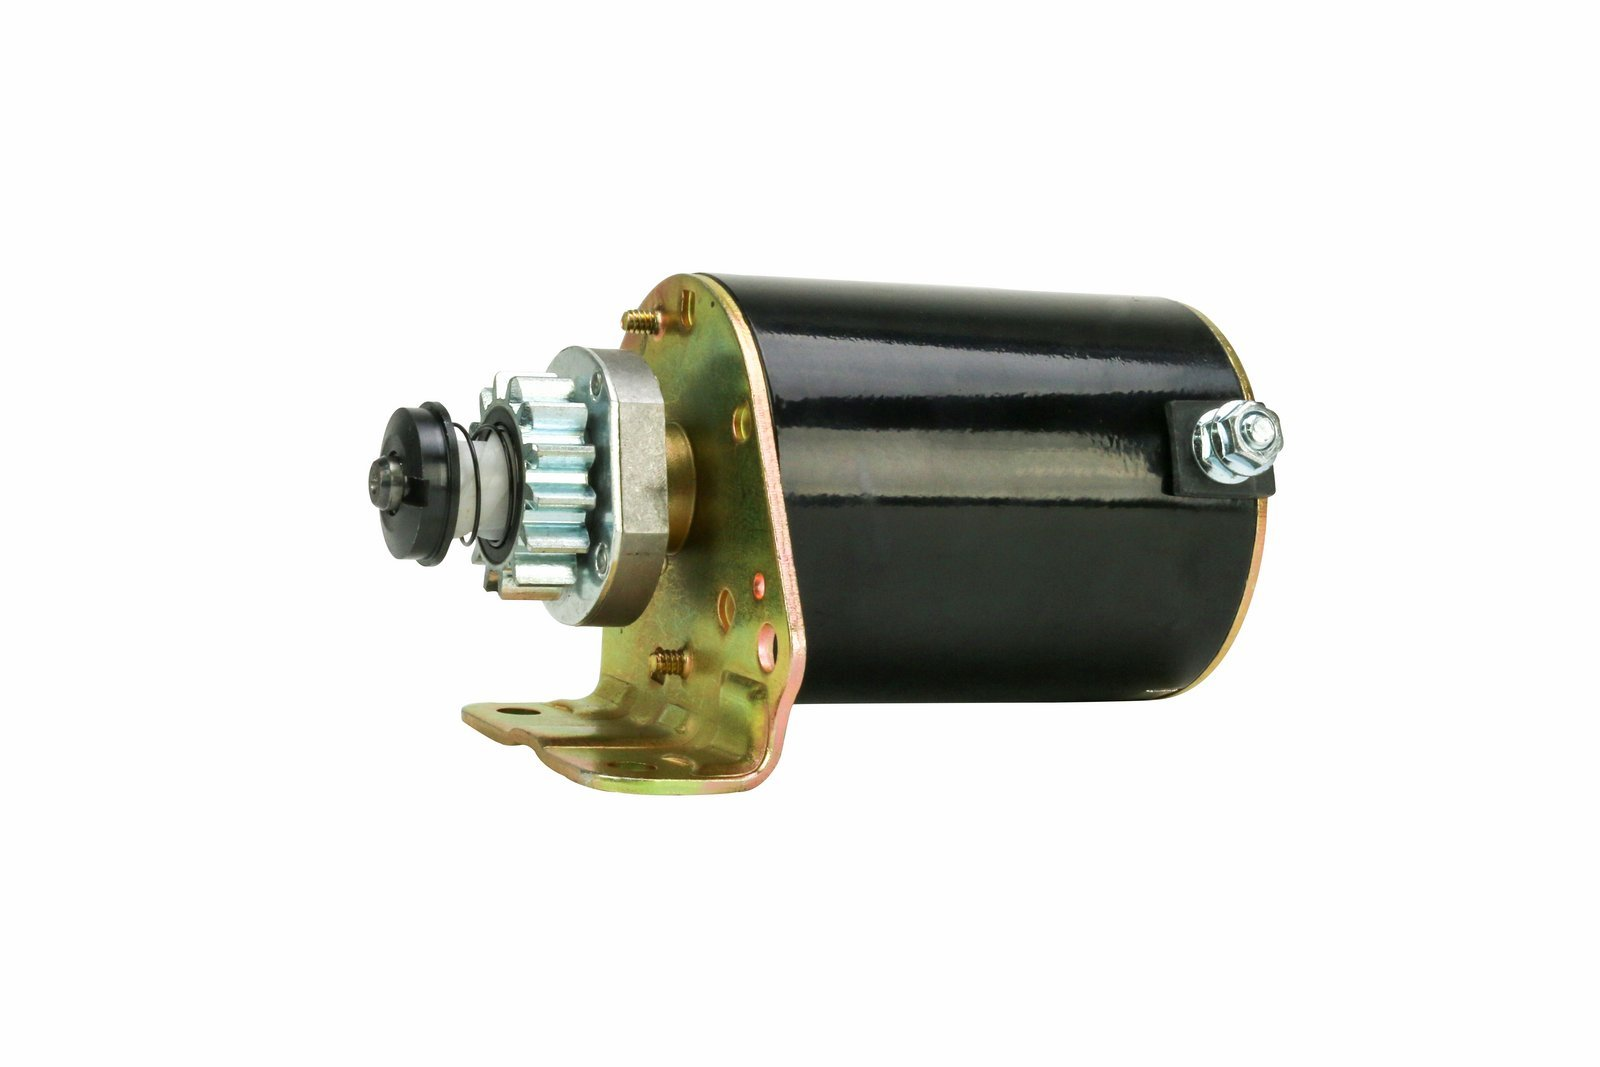 Erie Outdoor Power Equipment Erie Tools Electric 12V CCW 14 Tooth Steel Gear Starter Replaces Briggs & Stratton 693551 John Deere LS693551 SE501848